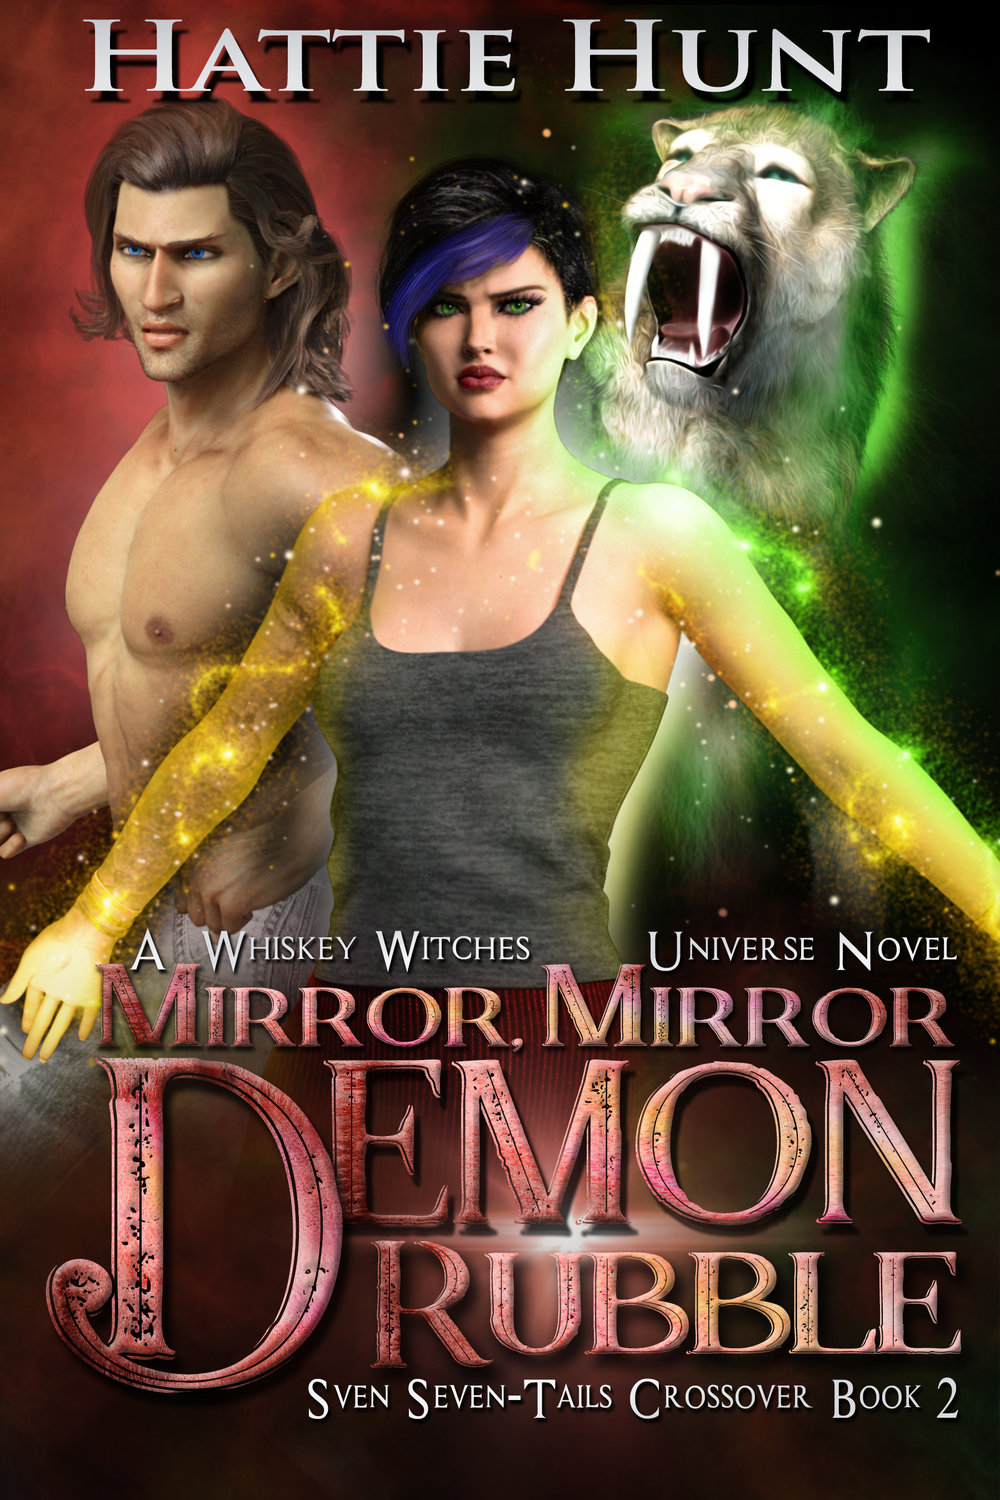 2f Mirror Mirror.ebook.jpg